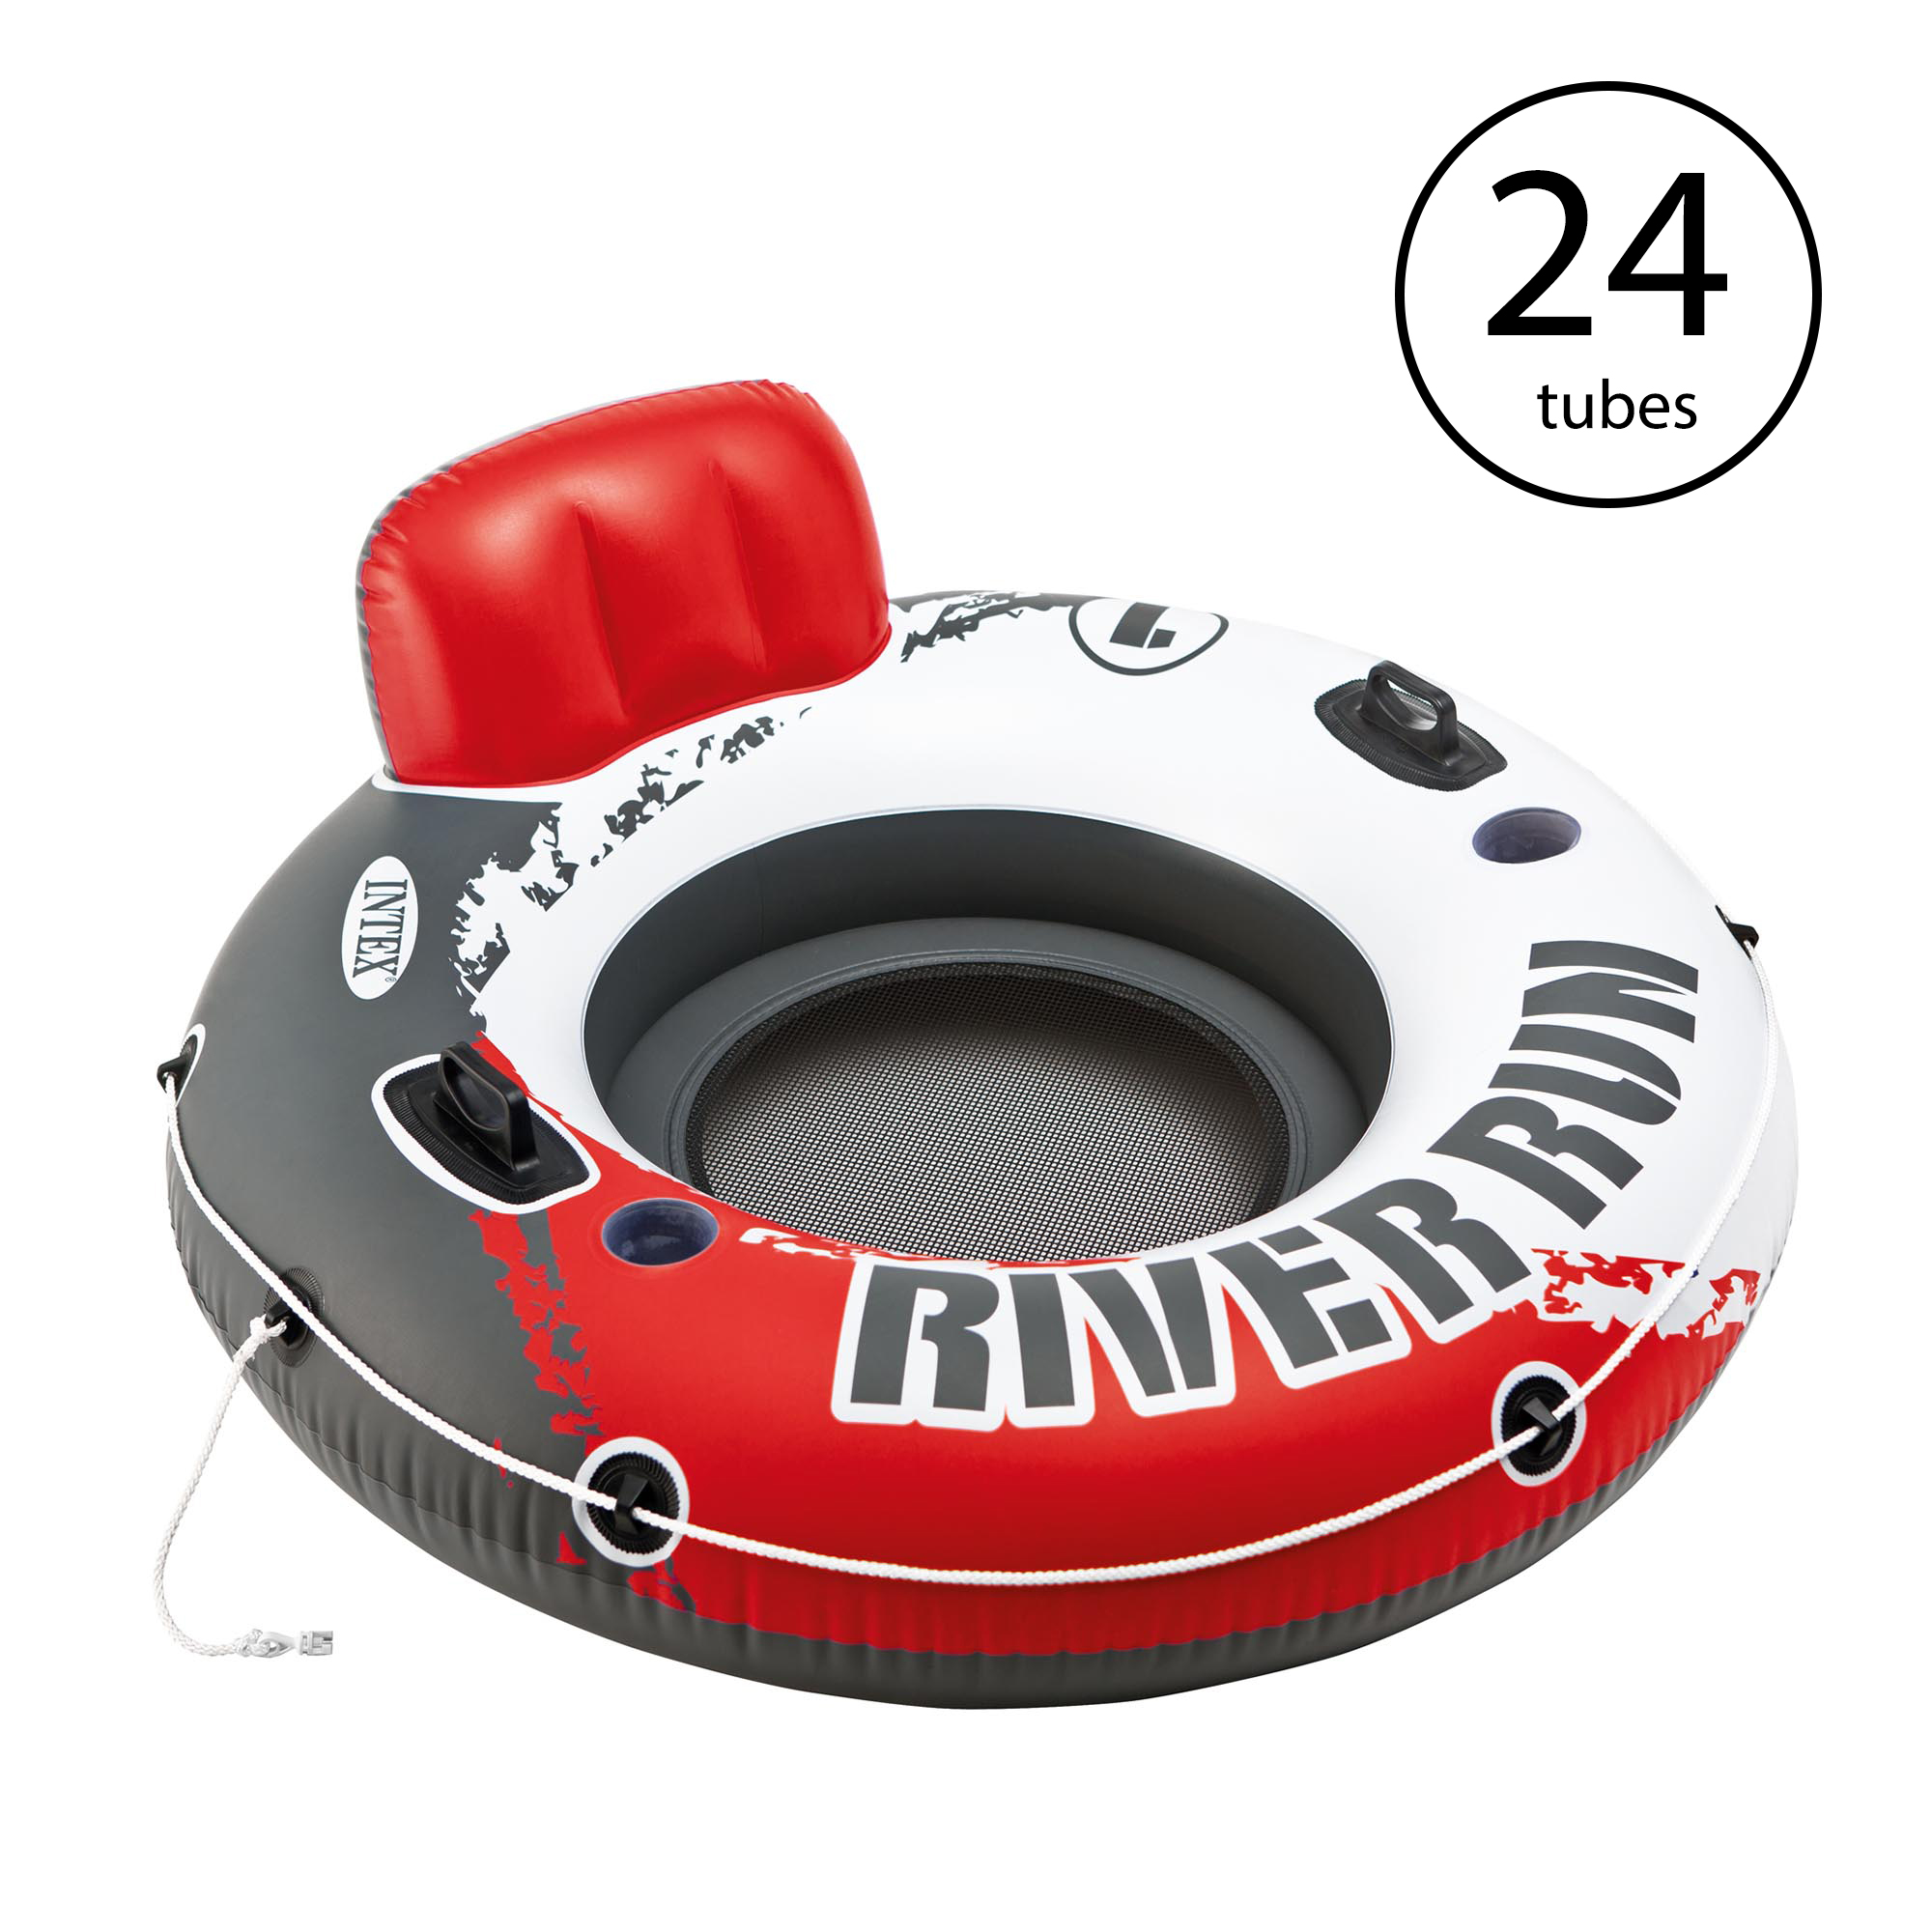 "Intex River Run 1 53"" Inflatable Floating Water Tube Lake Raft, Red (24 Pack)"